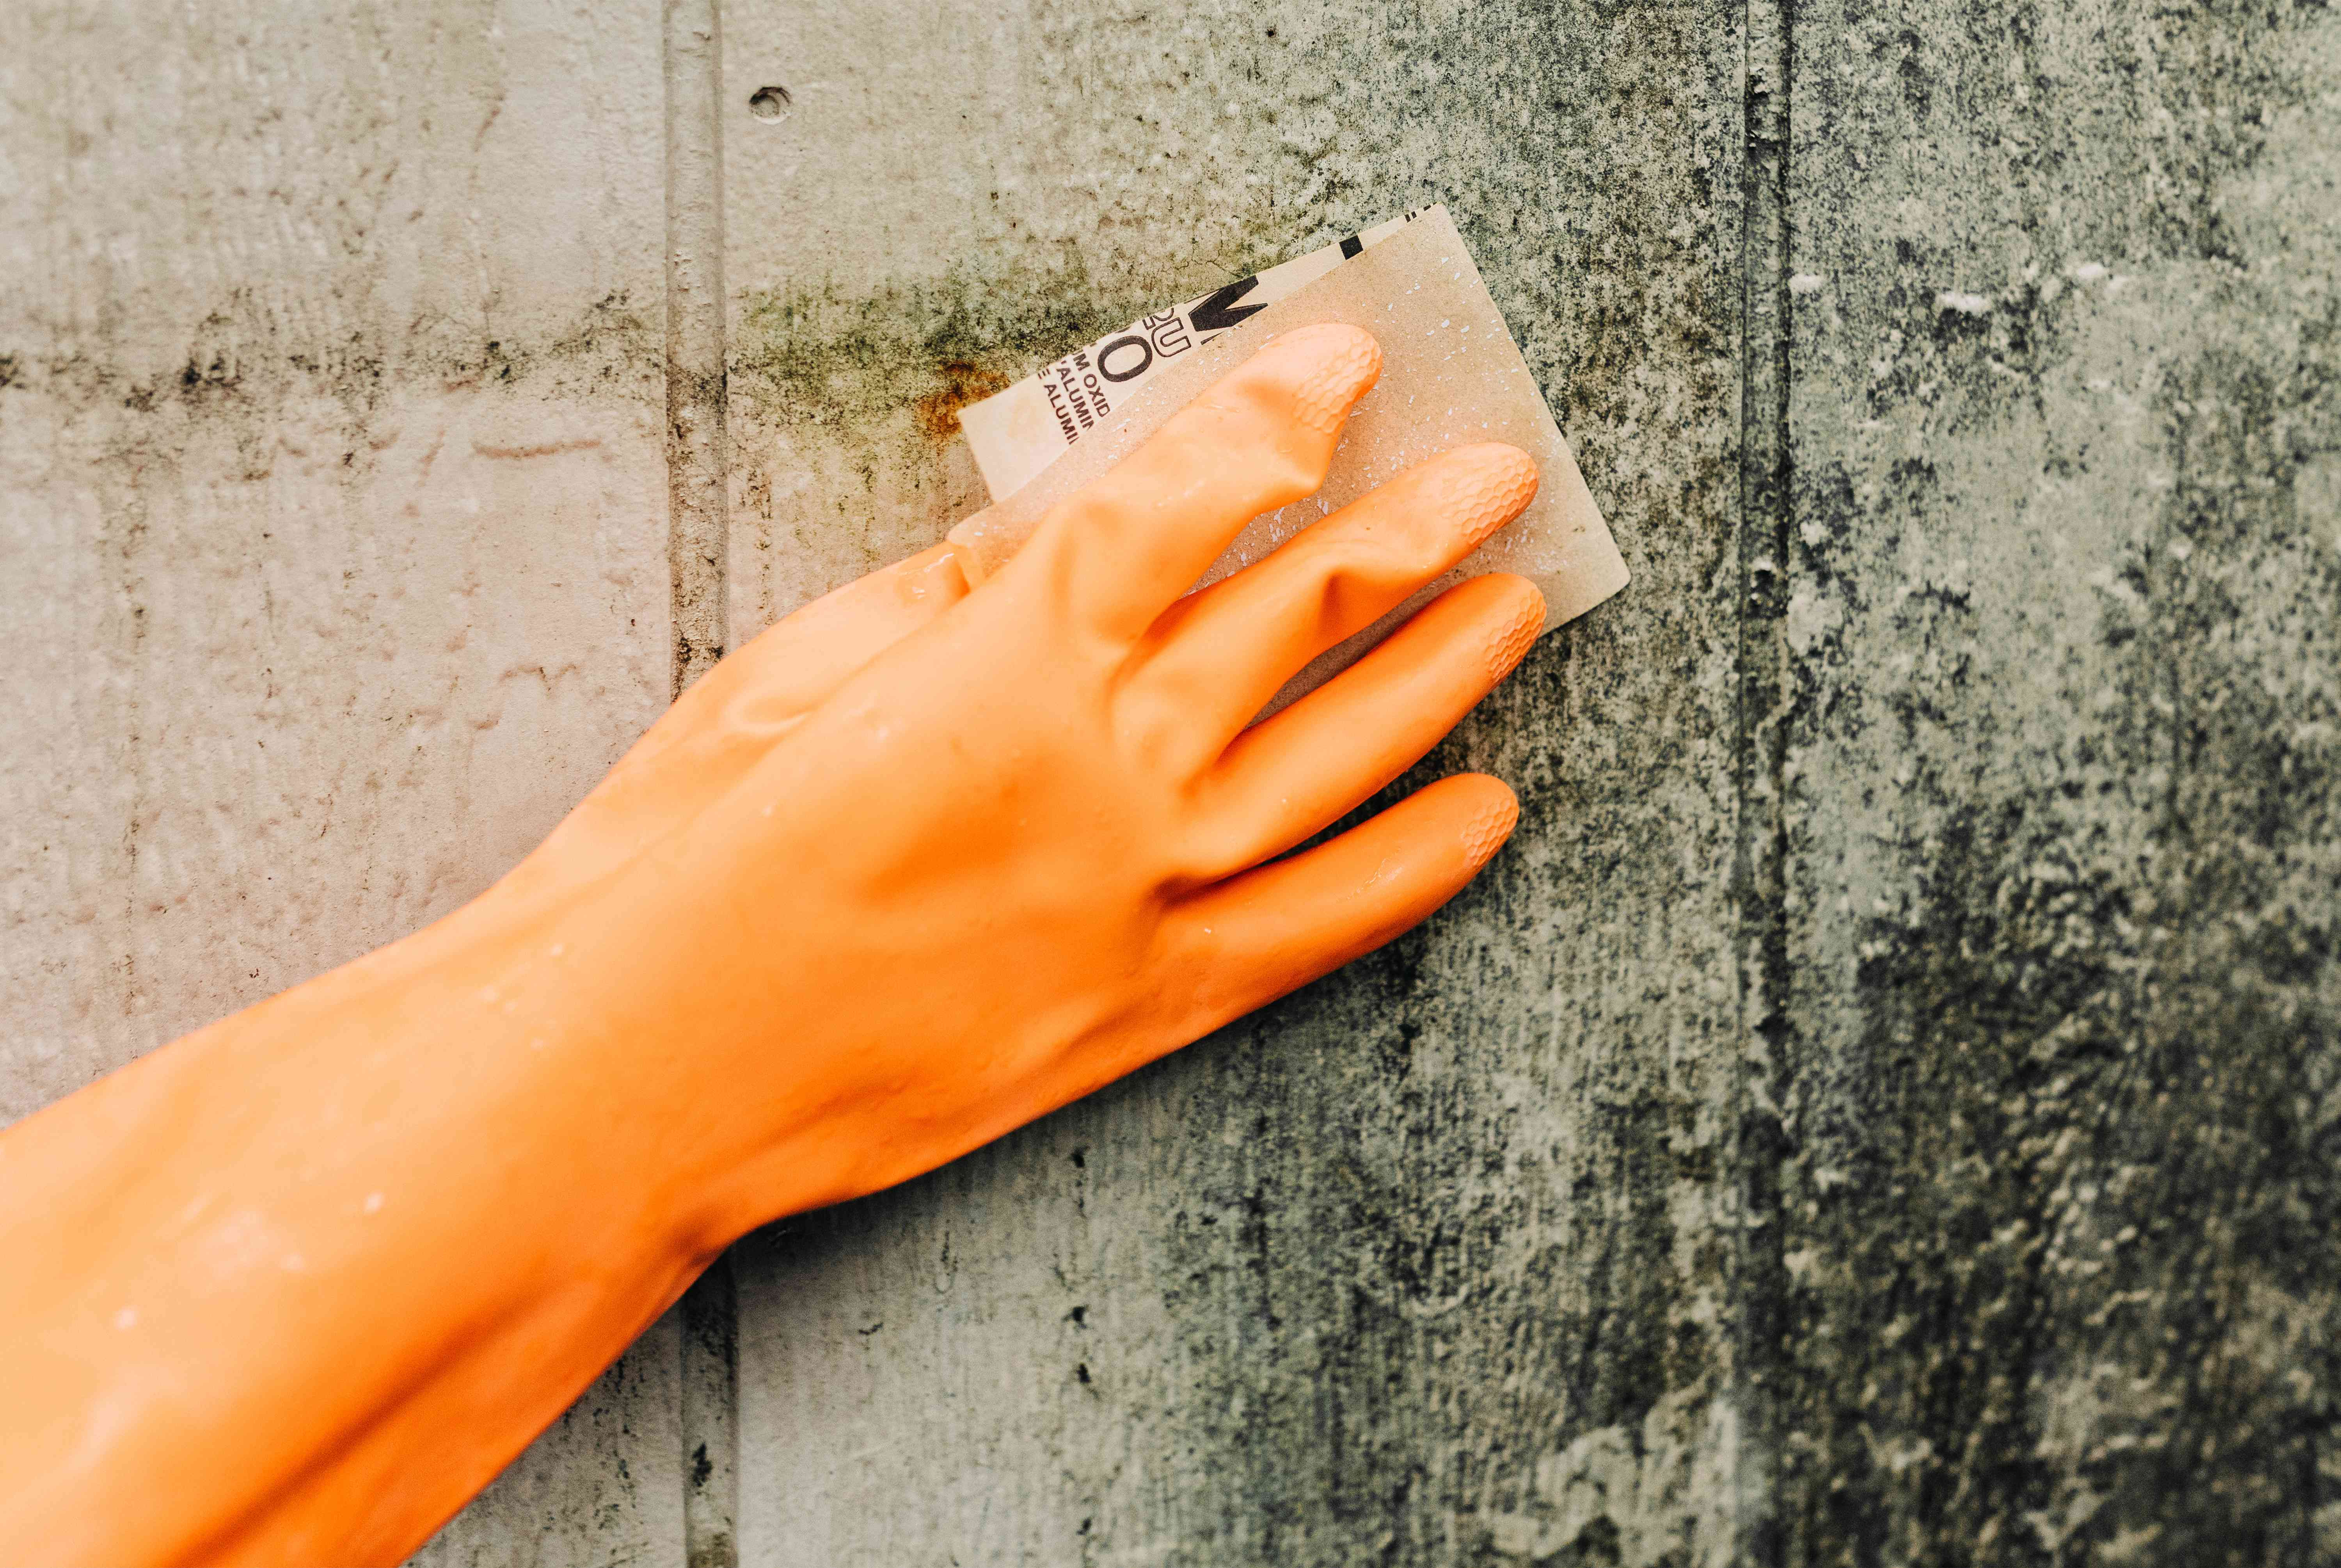 Moldy wood being sanded down with sandpaper and orange gloves